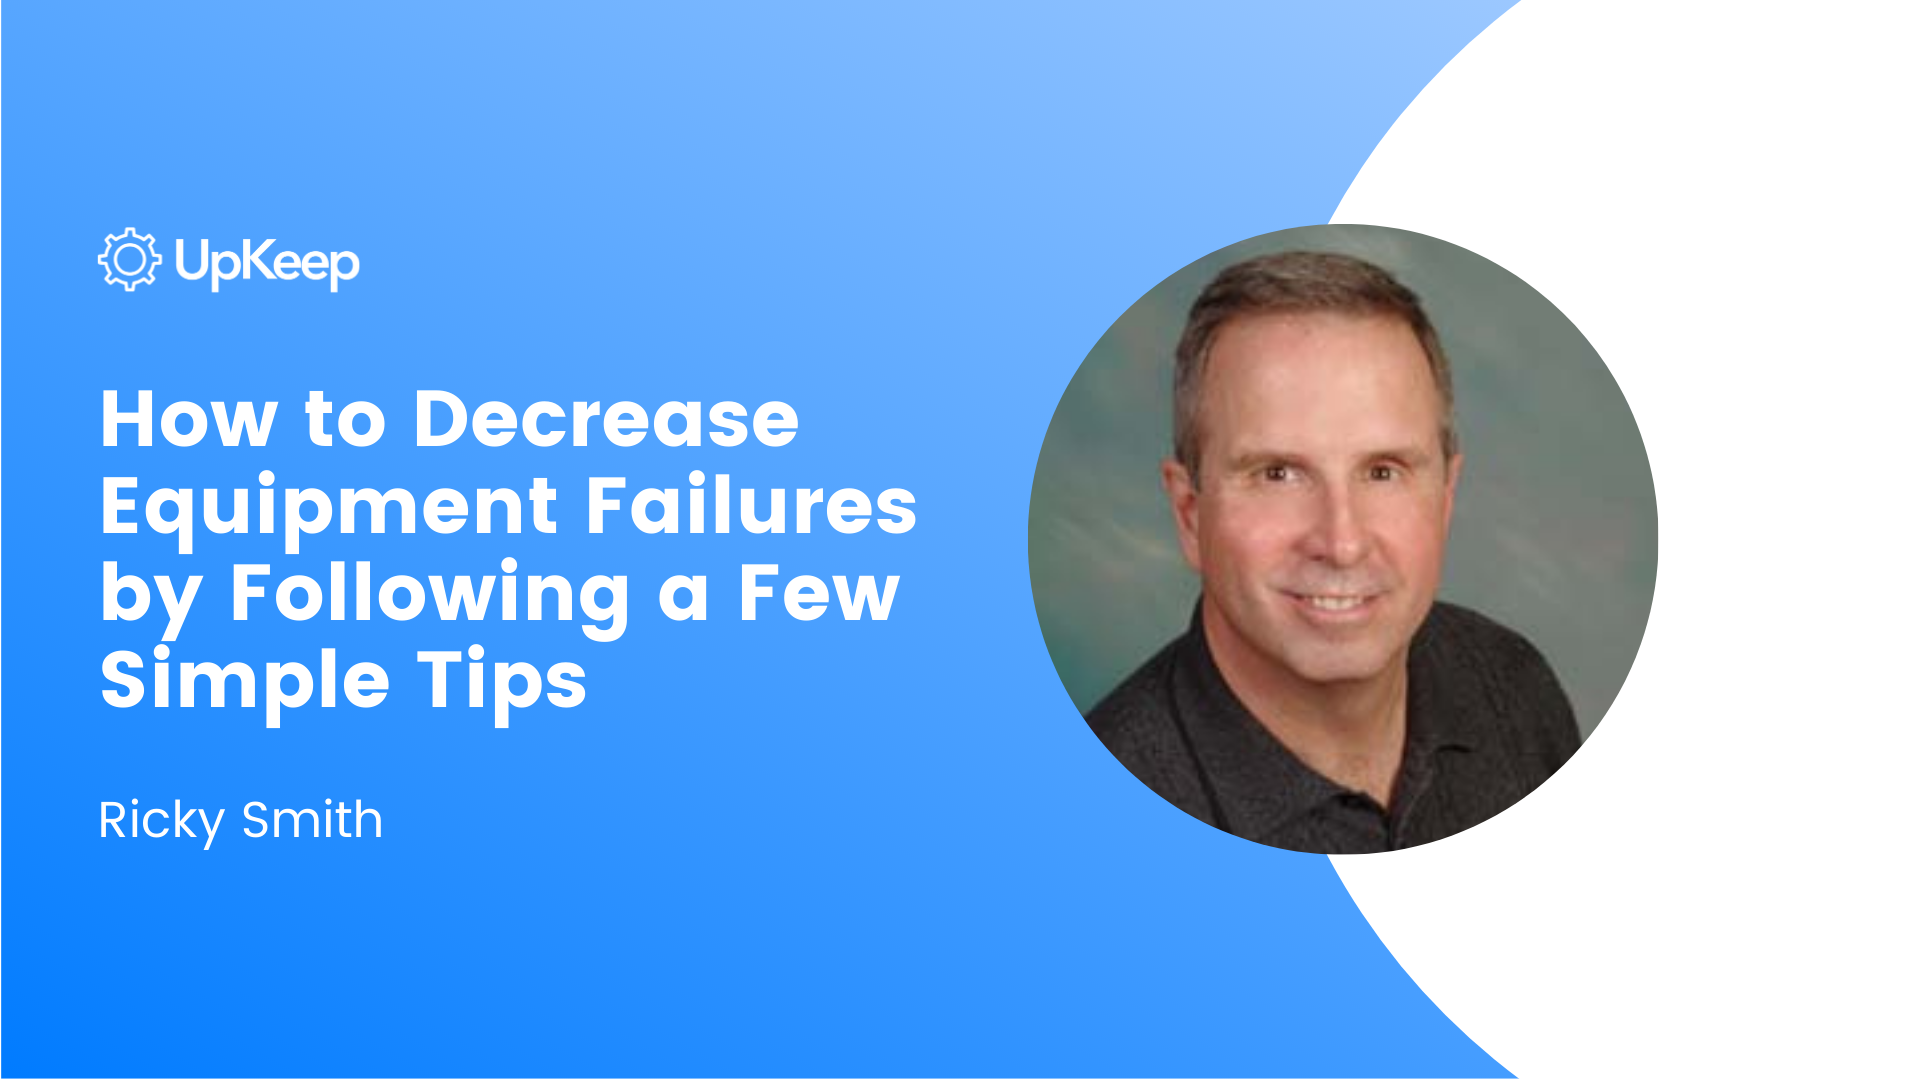 How to Decrease Equipment Failures by Following a Few Simple Tips